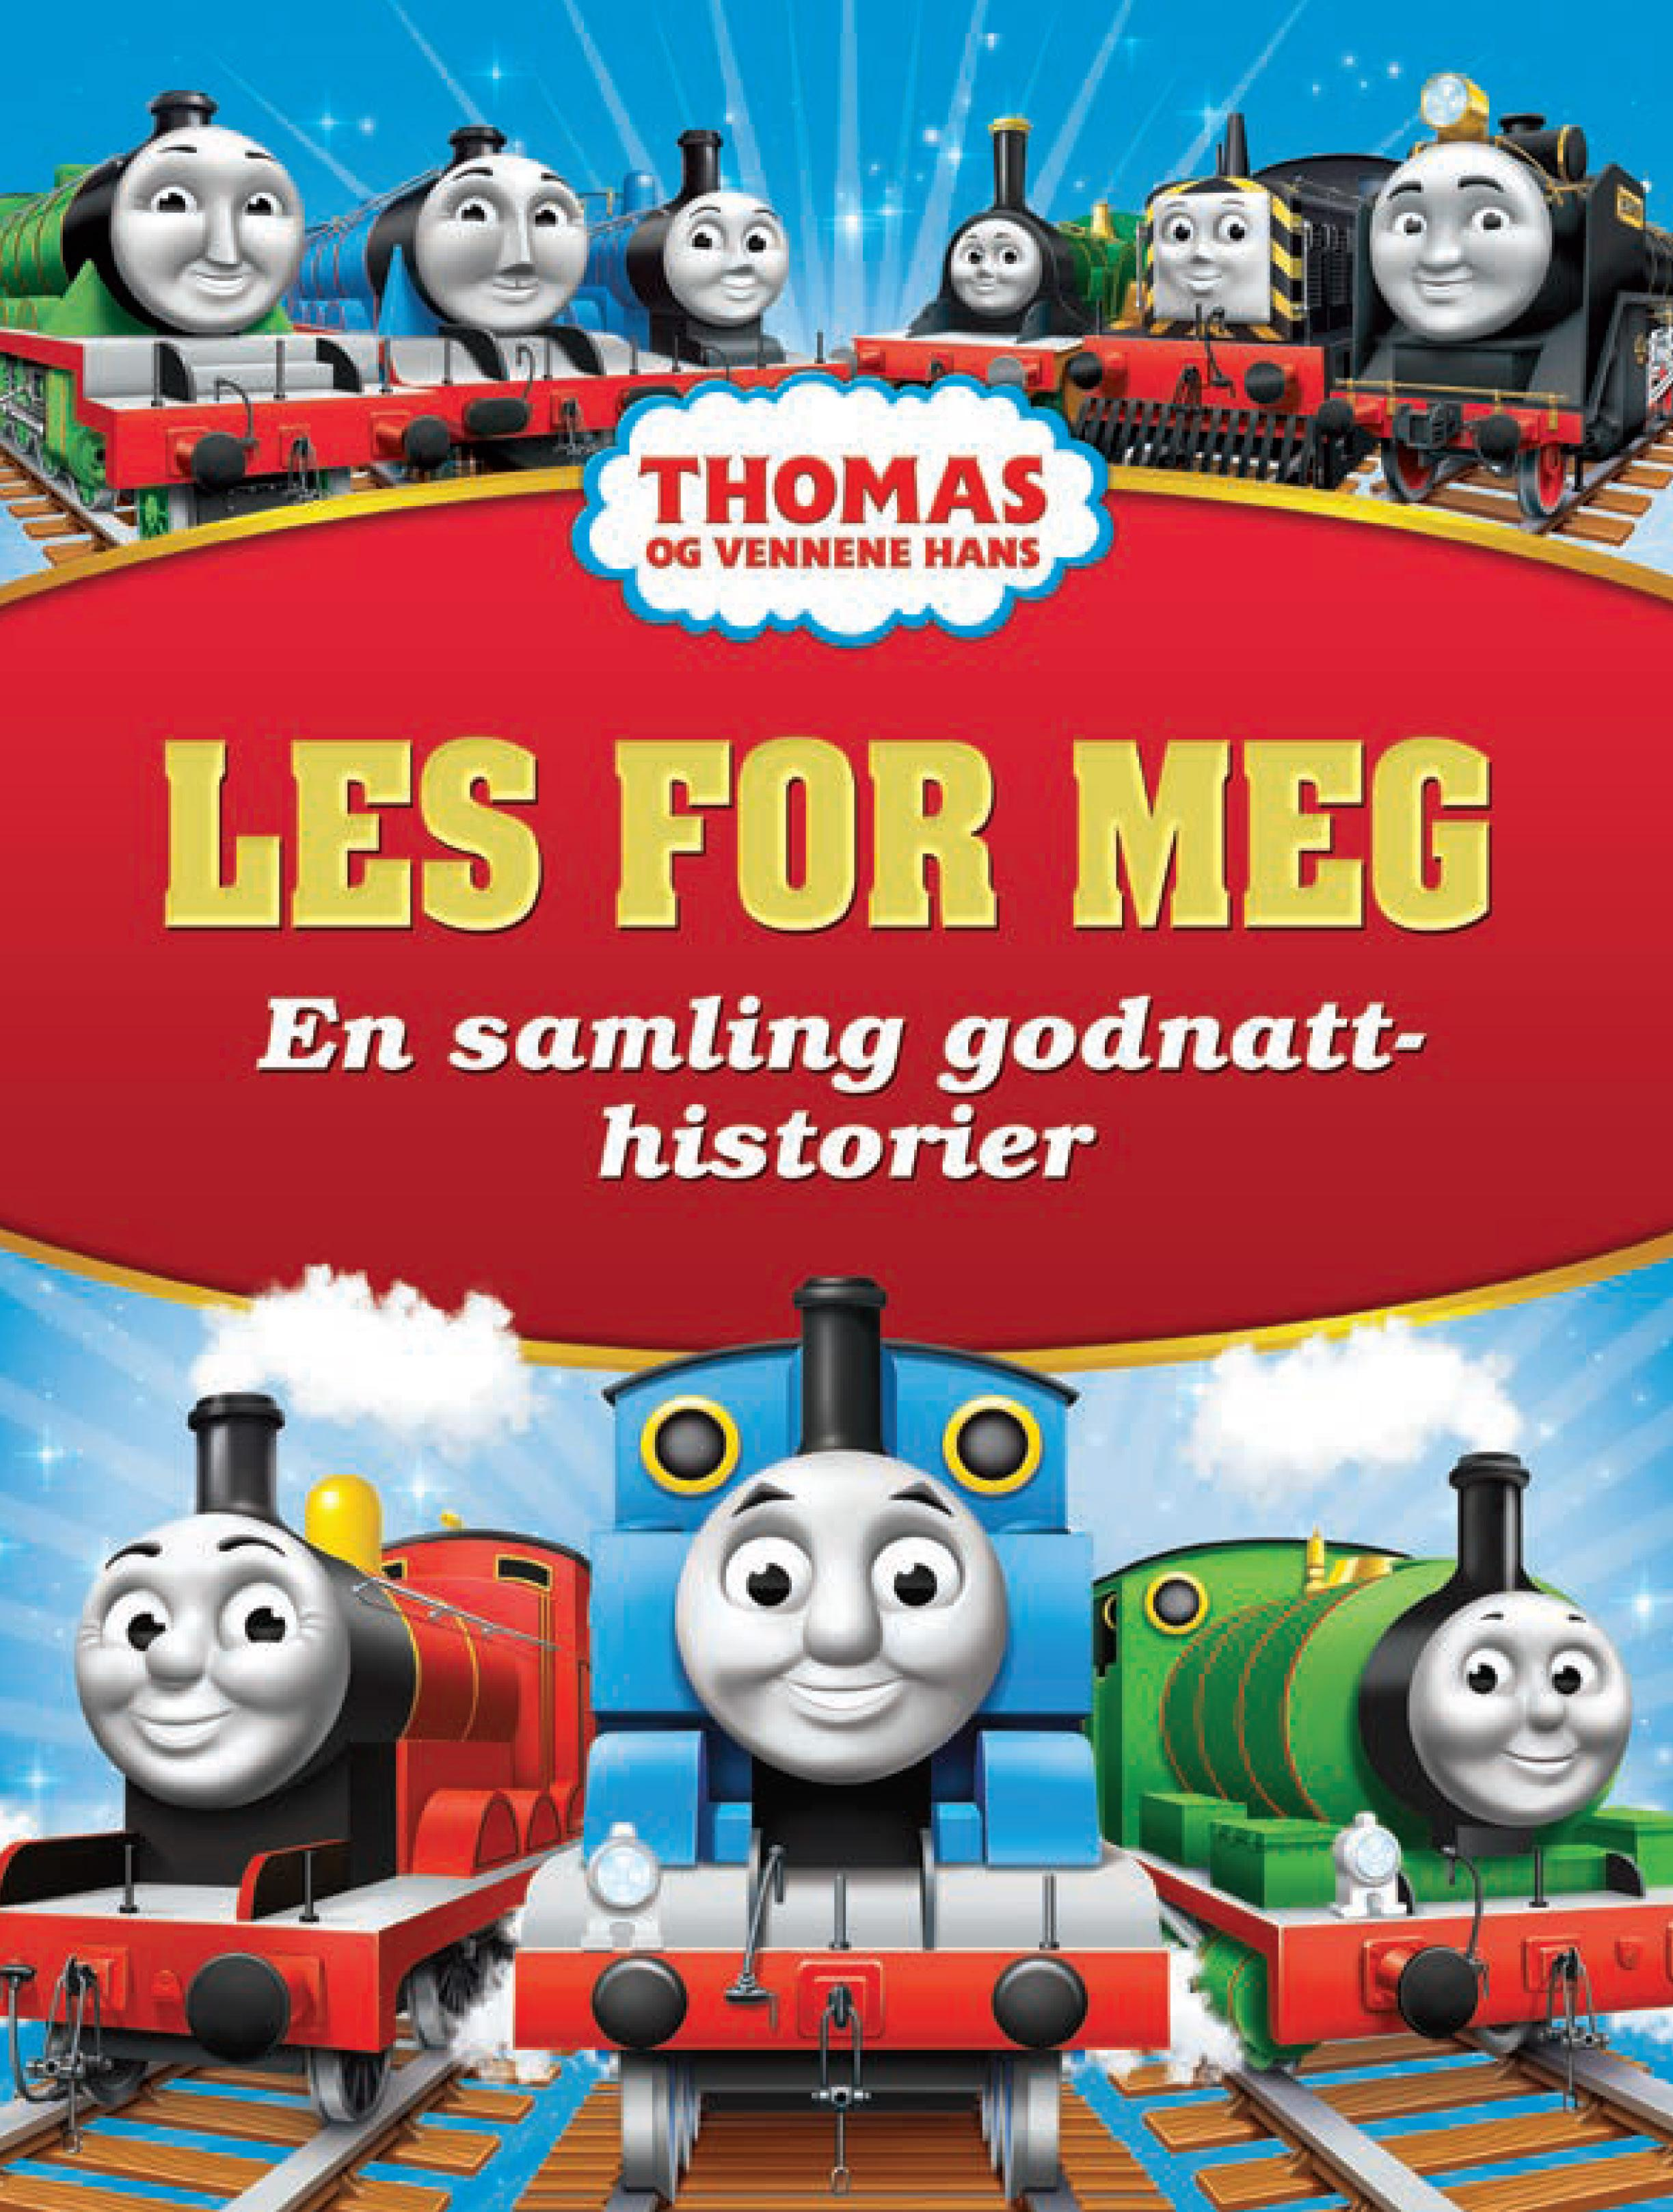 Les for meg